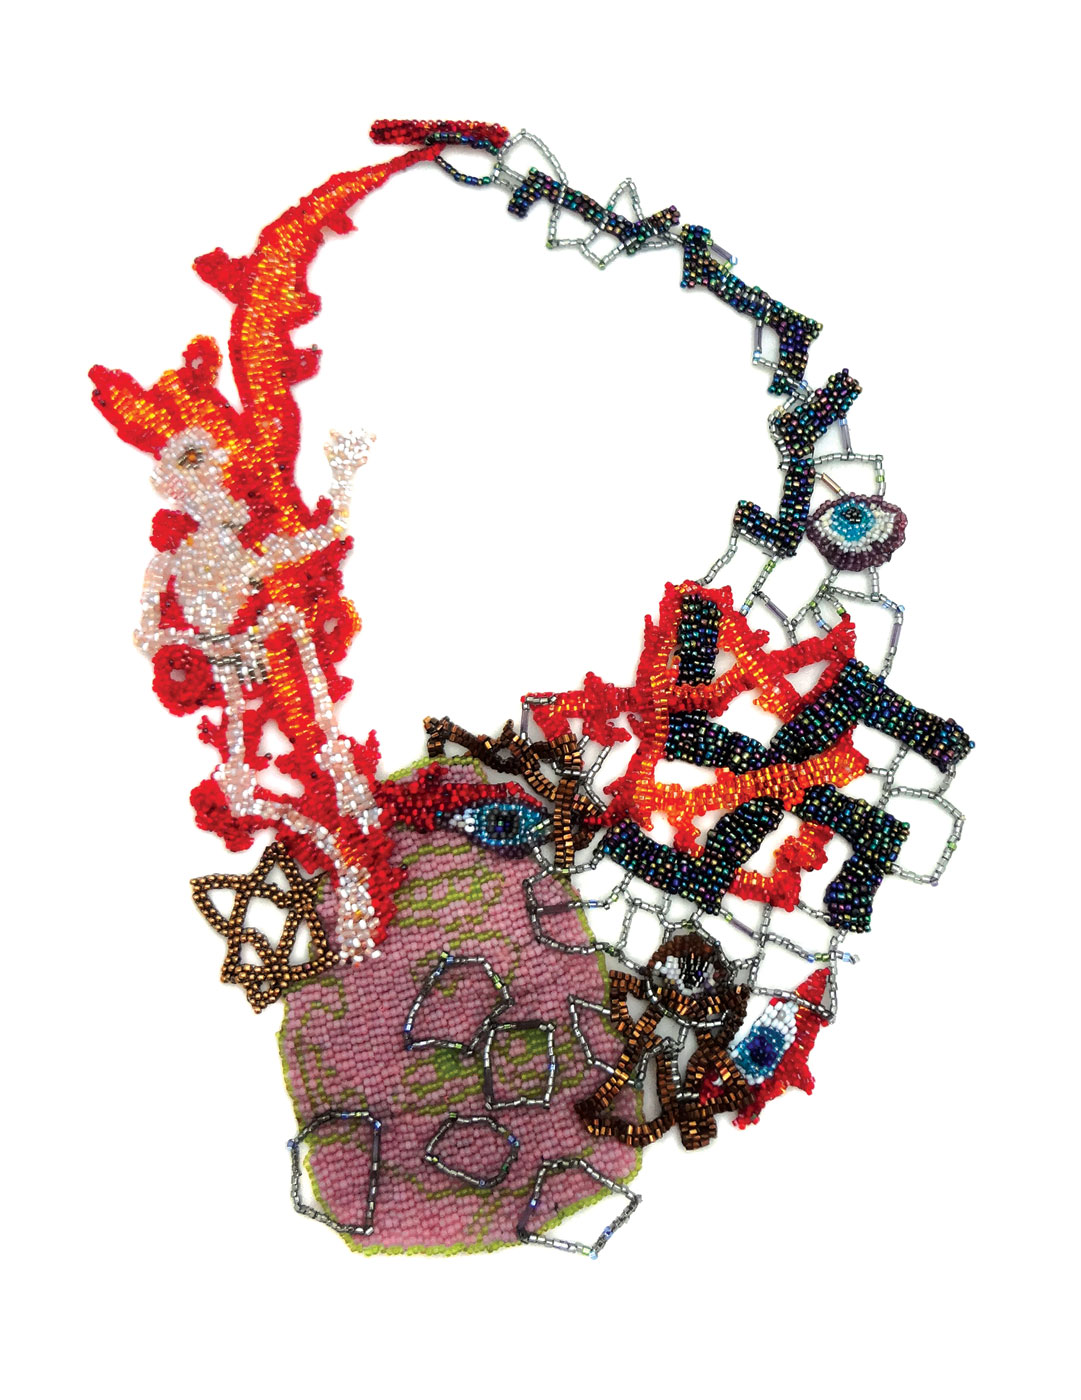 HOLOCAUST NECKLACE by Joyce Scott of peyote-stitched glass beads, threads, 30.5 x 19.7 centimeters, 2013.  Photograph by Emelee Van Zee. Photographs courtesy of Fuller Craft Museum .